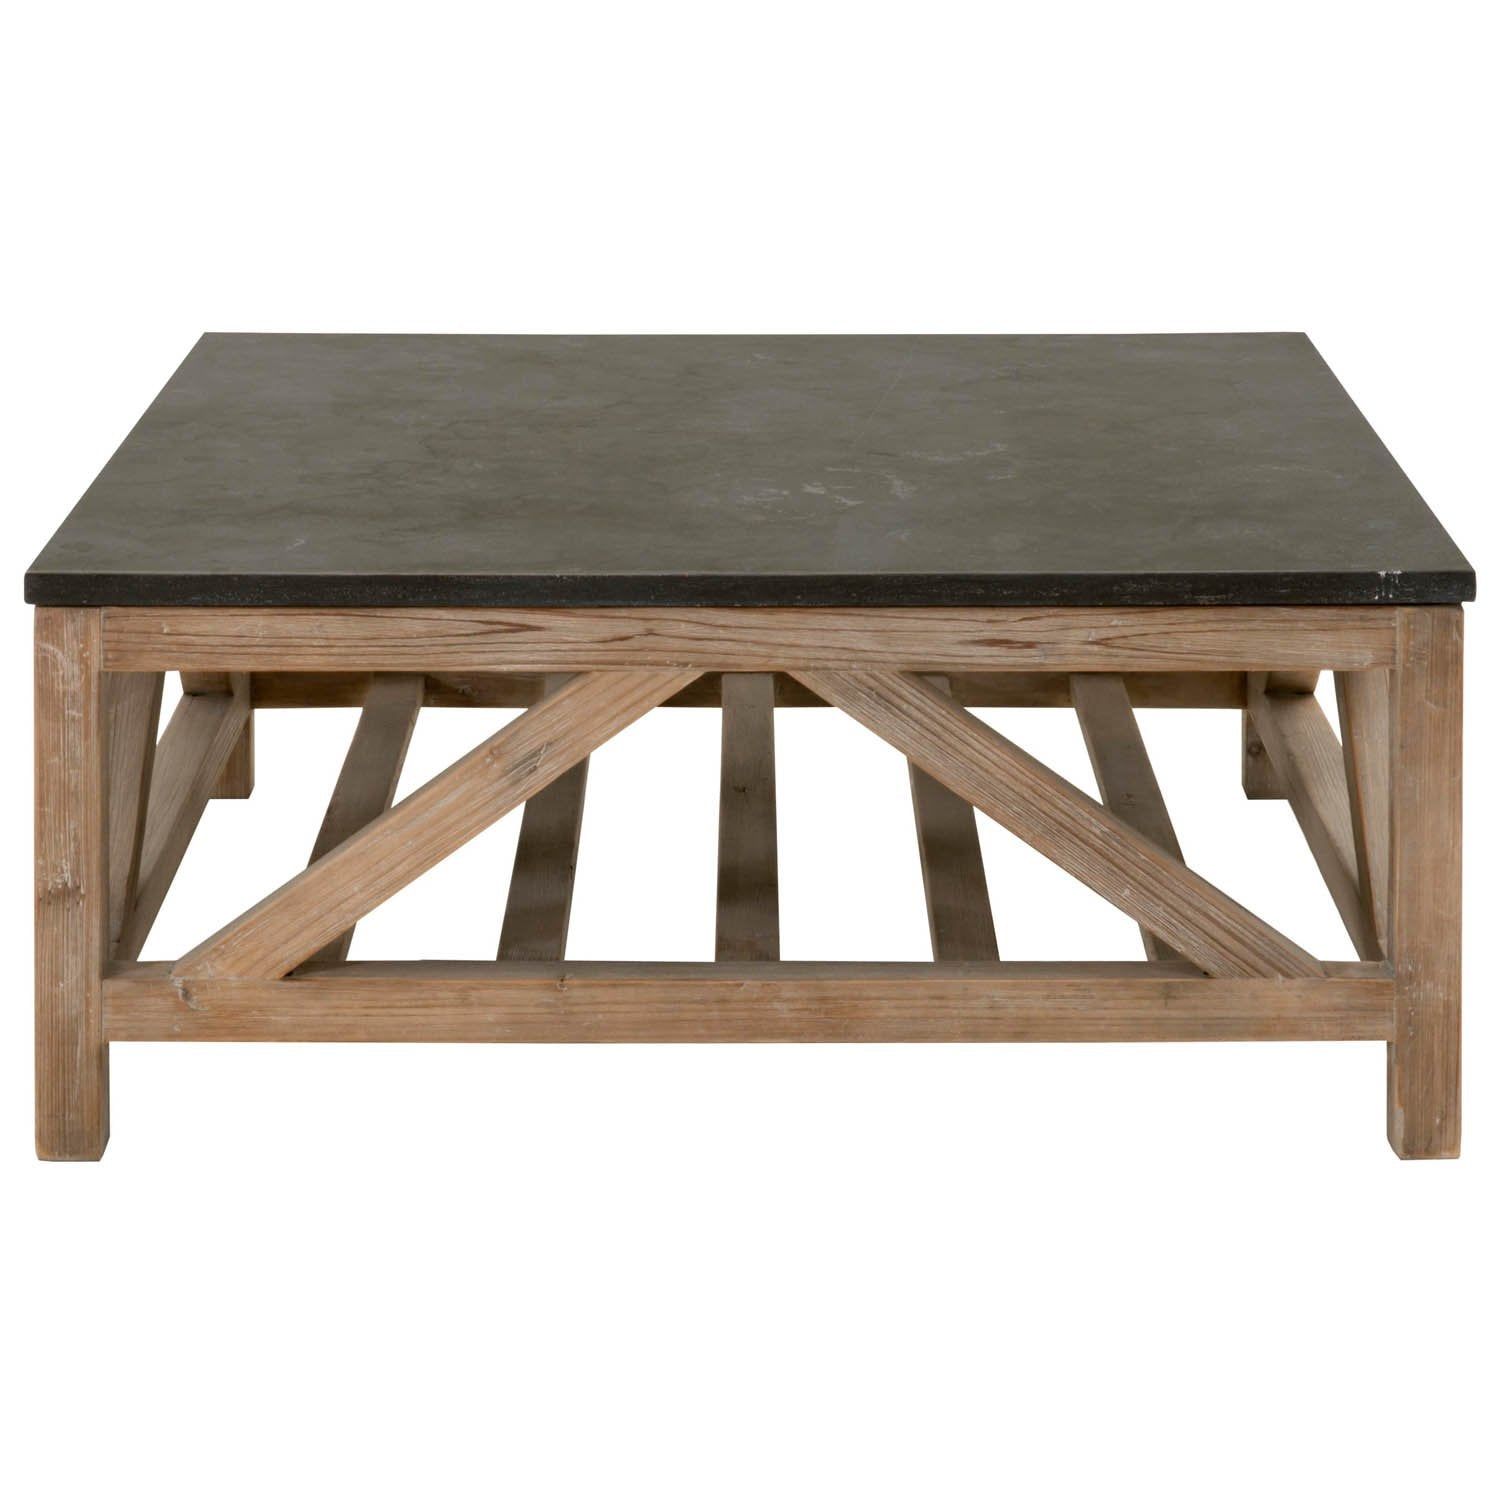 Blue Stone Square Coffee Table in Smoke Gray Pine